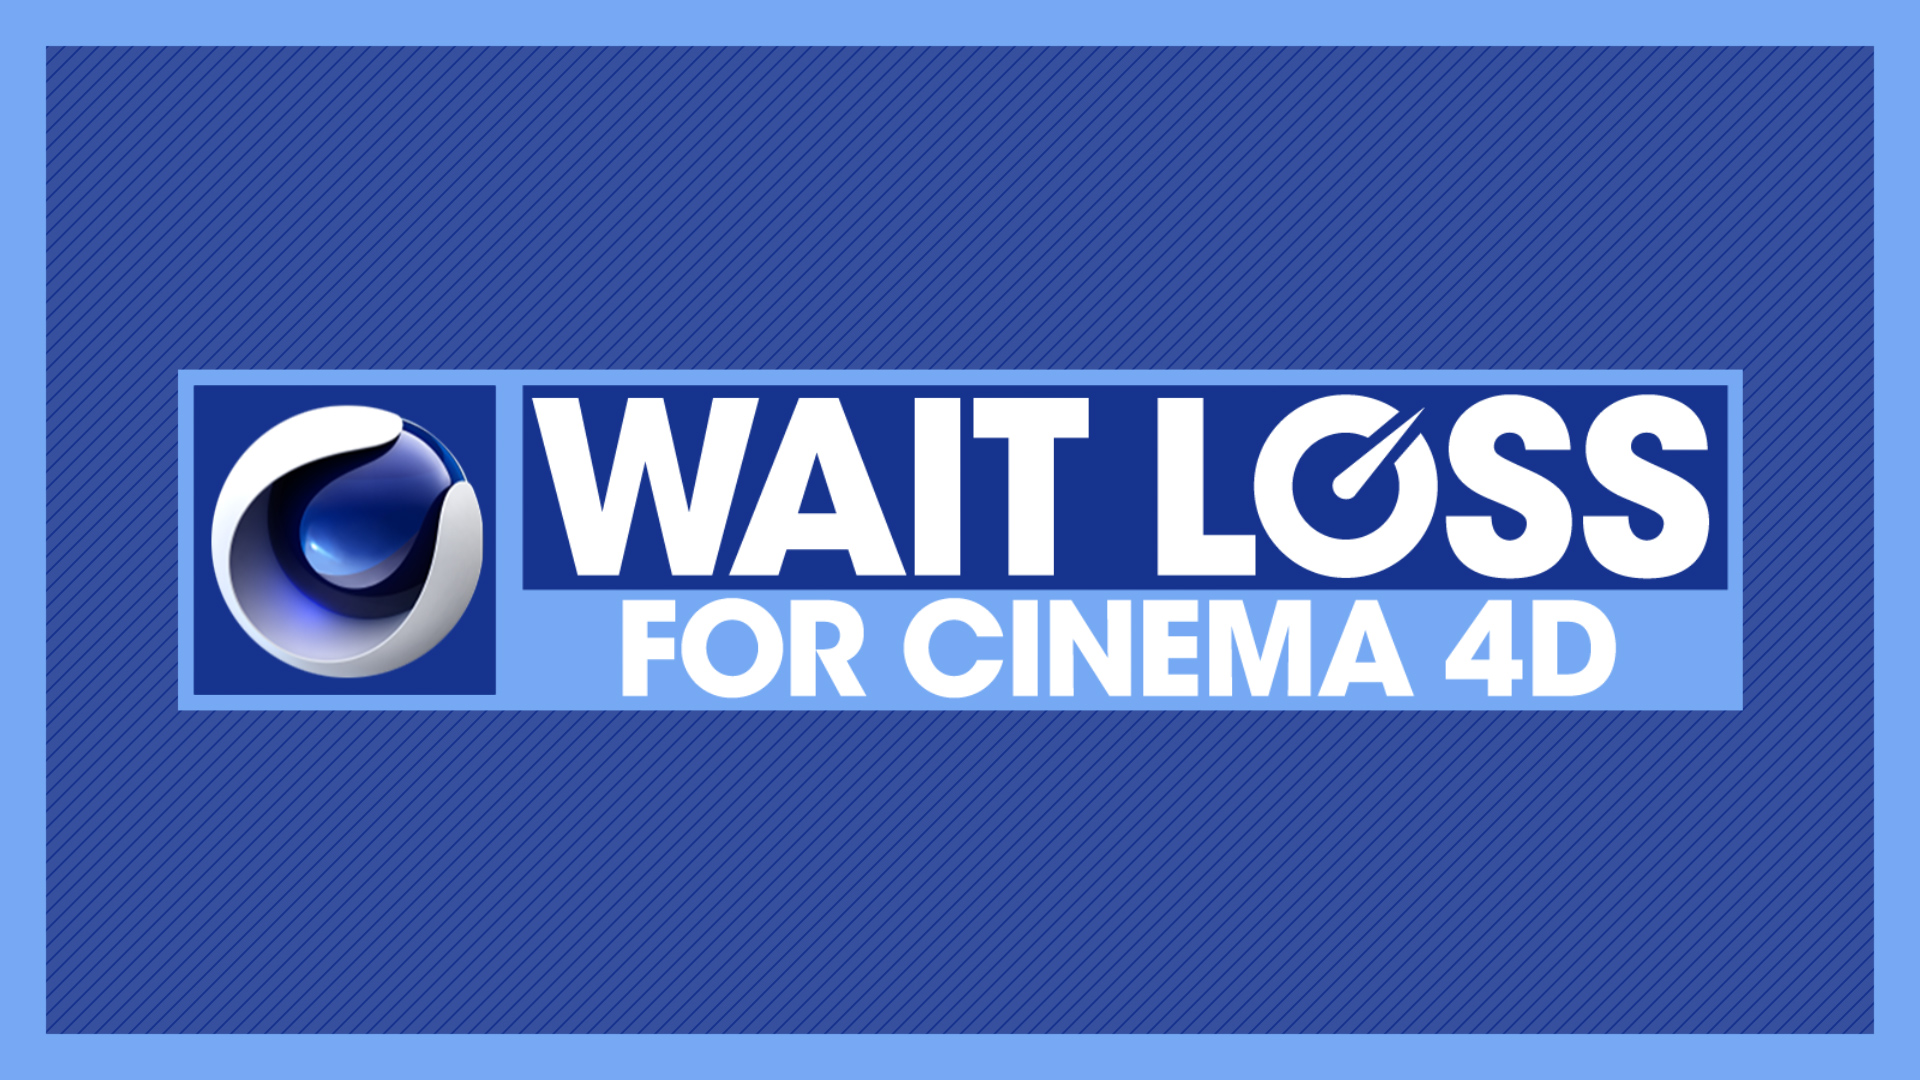 Wait Loss for Cinema 4D